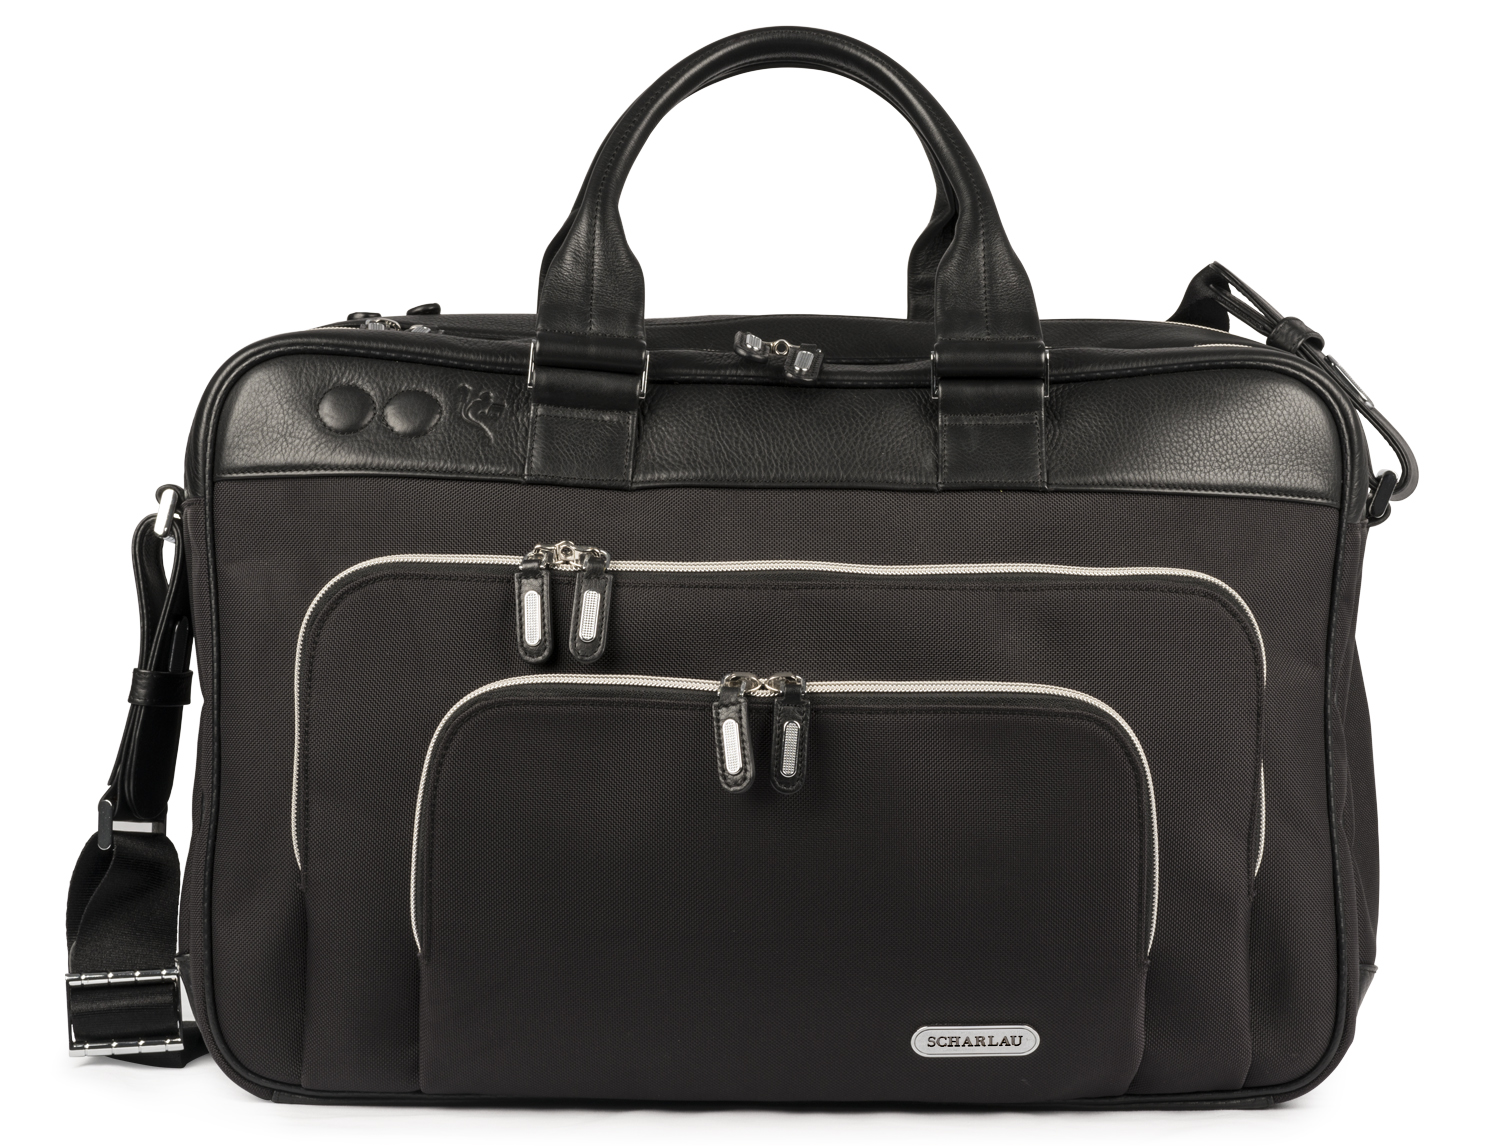 177d84e8699 Travelling and Sports bag - Scharlau Leather Goods Shop